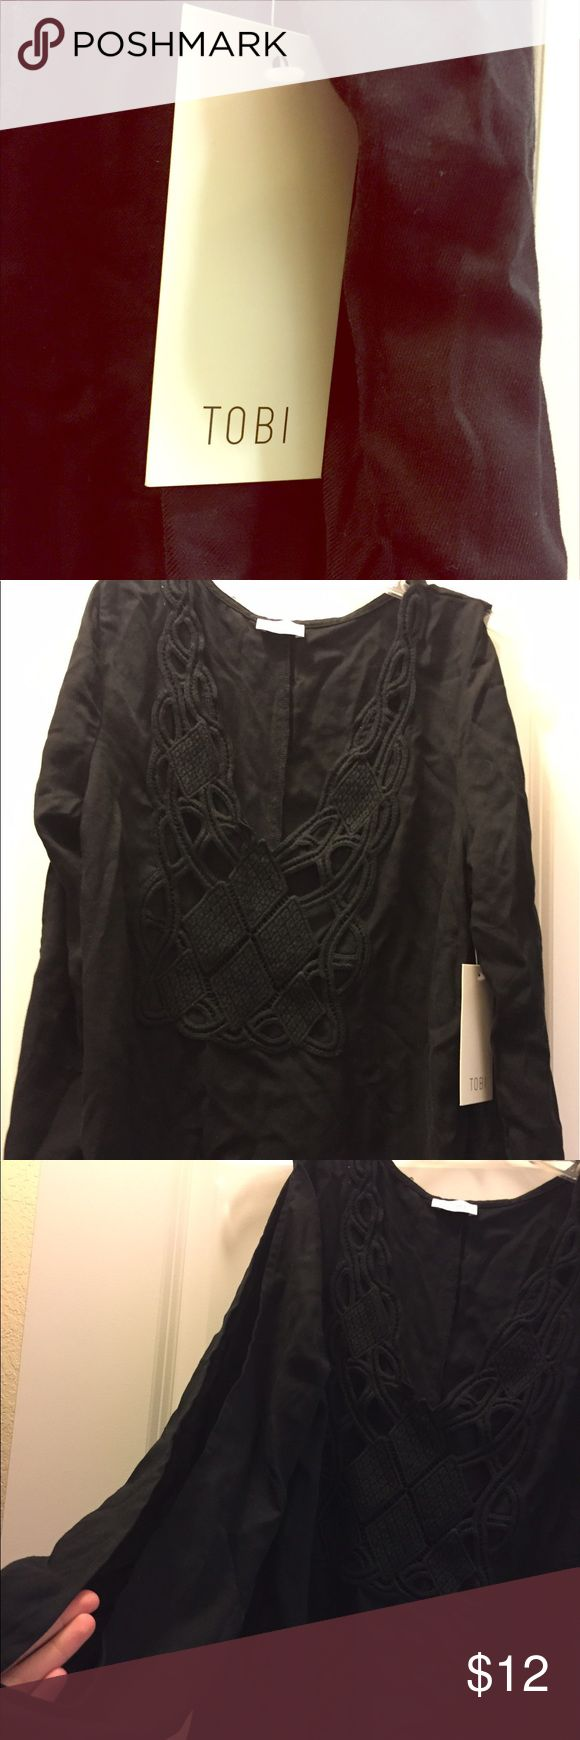 Tobi Black Dress with open long sleeves crochet Black dress with v-neck crochet design. Open long sleeves. Perfect for a festival or a night out! Never worn. NWT. Sold out on Tobi: Nena Crochet Dress Tobi Dresses Long Sleeve